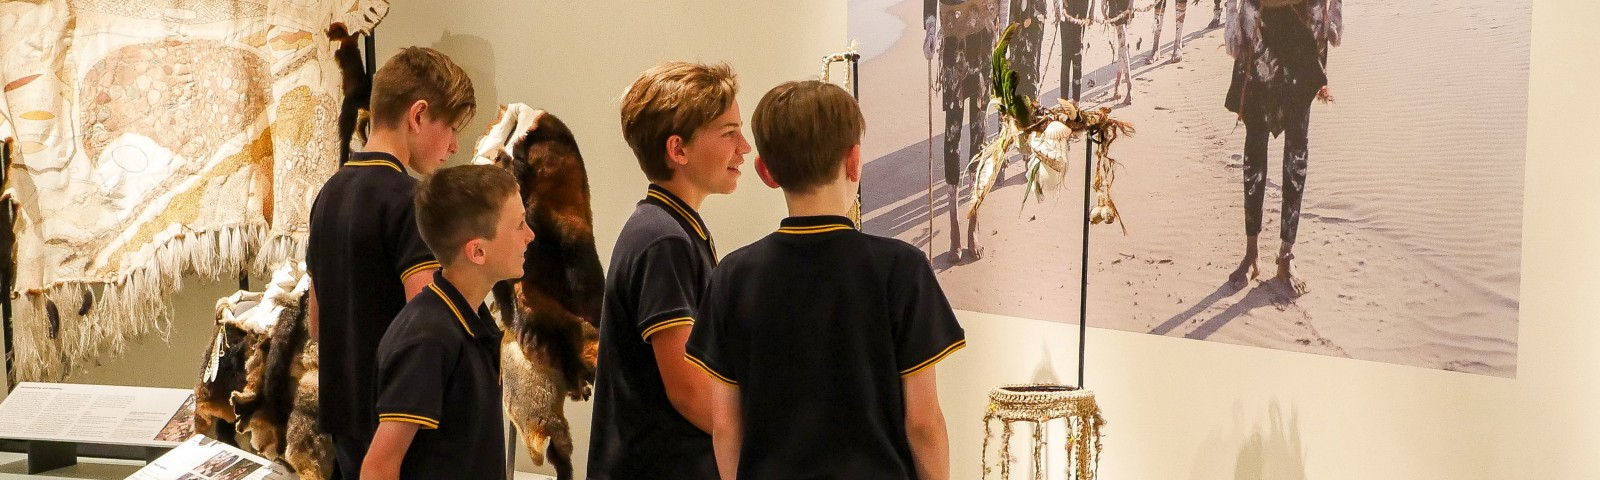 Four boys in navy school uniforms look at a museum display of headpieces decorated with feathers and shells.